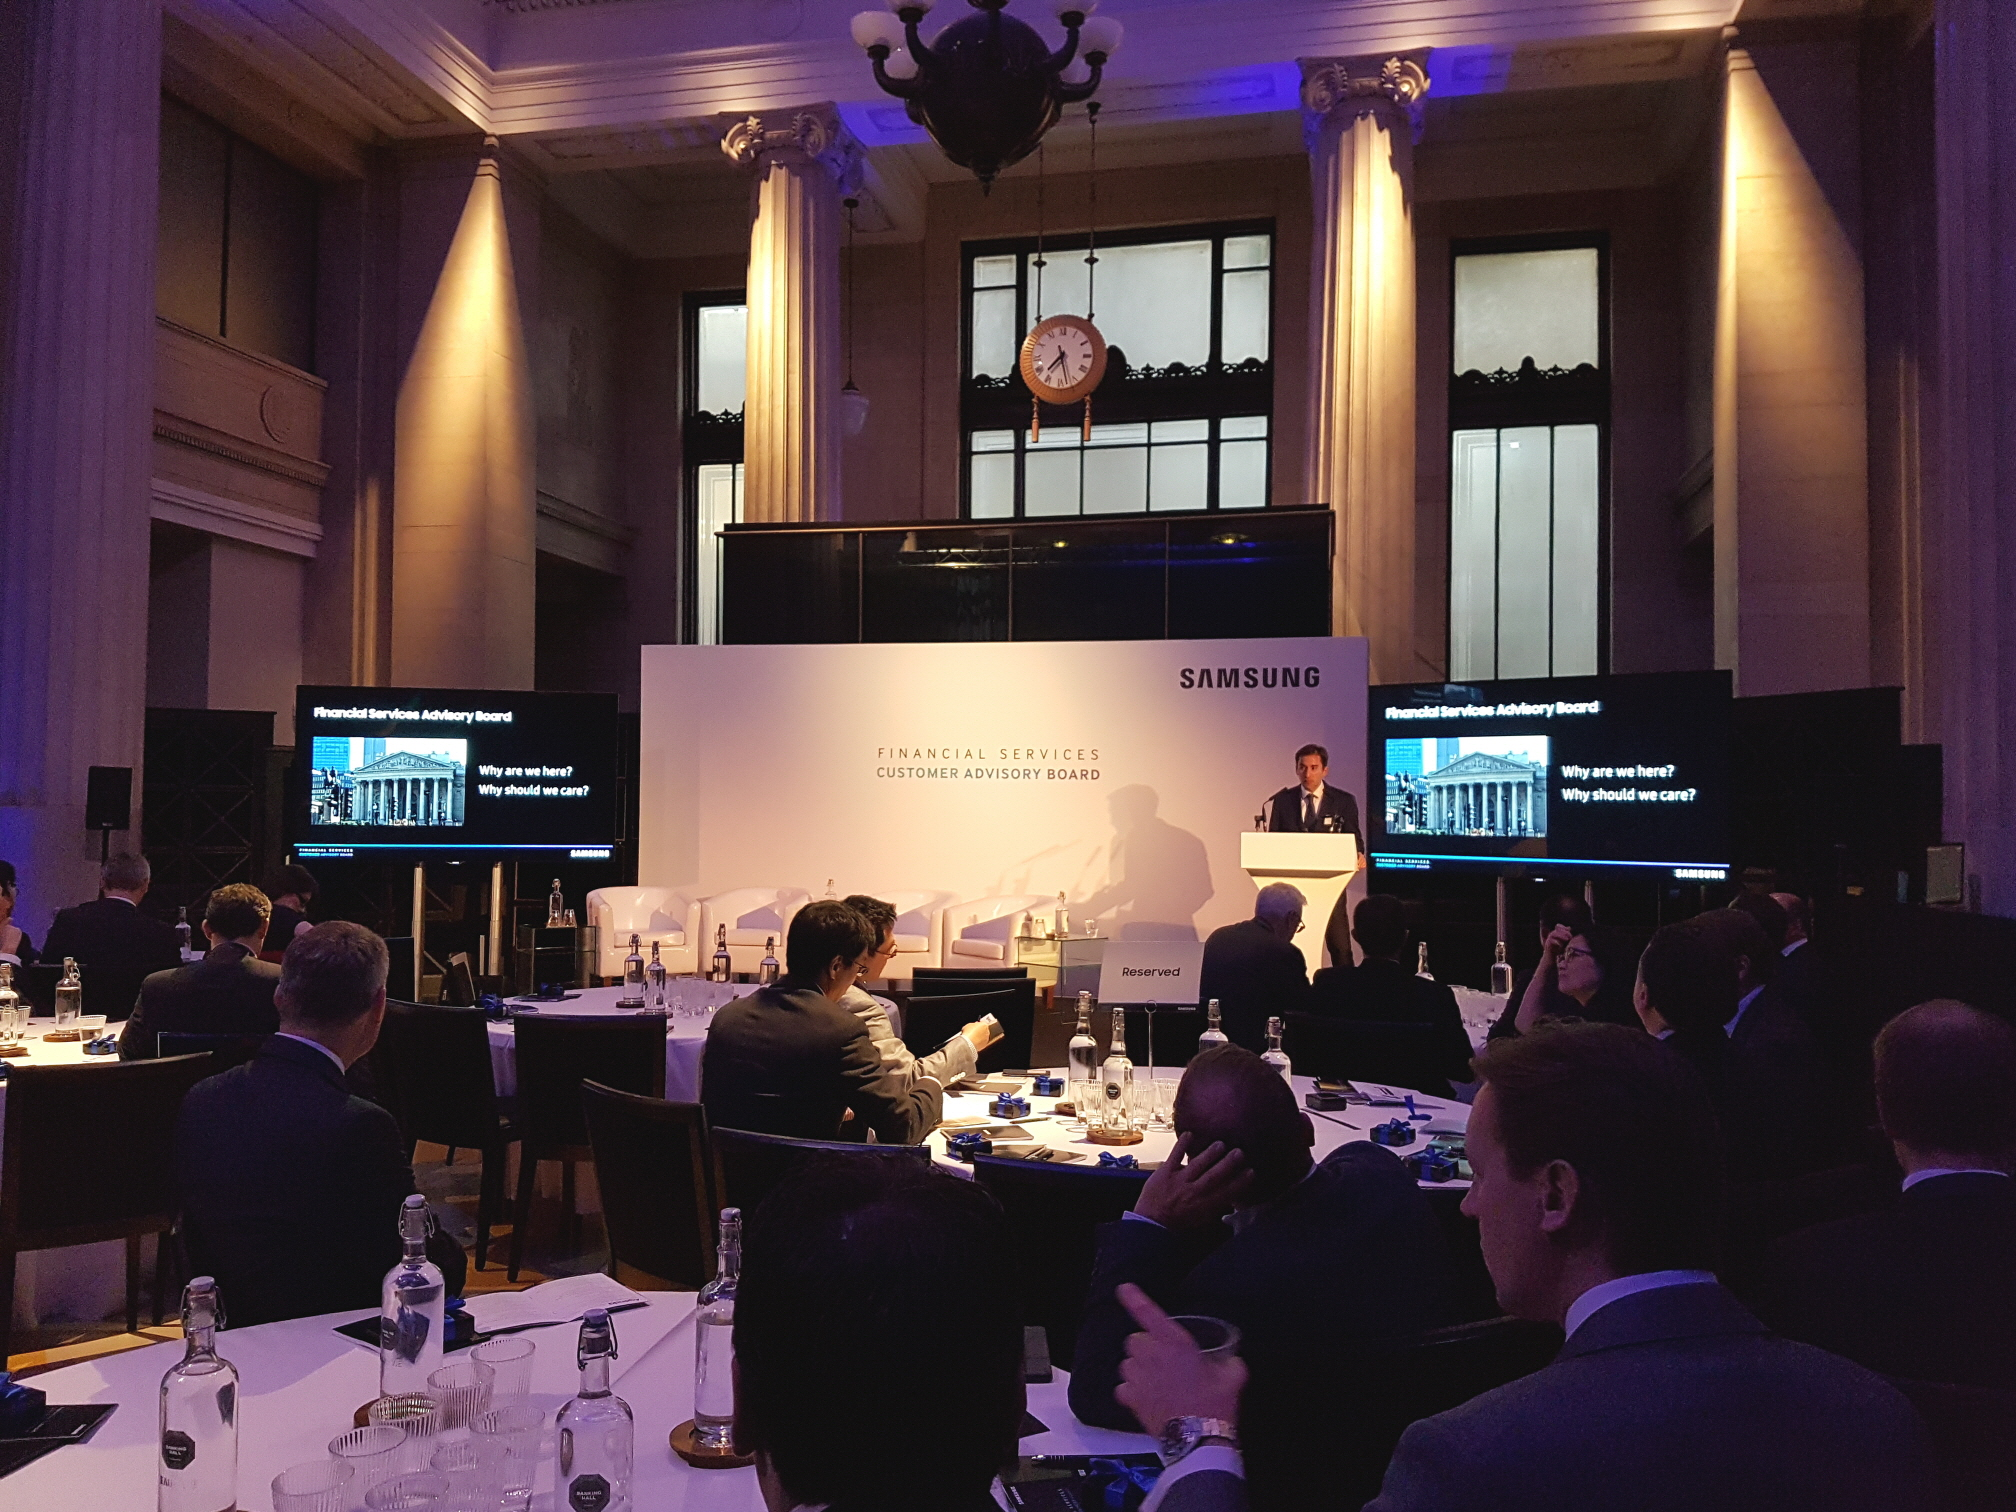 Samsung SDS and Samsung Electronics held a solution presentation targeting top financial institutions and received high interest from clients.